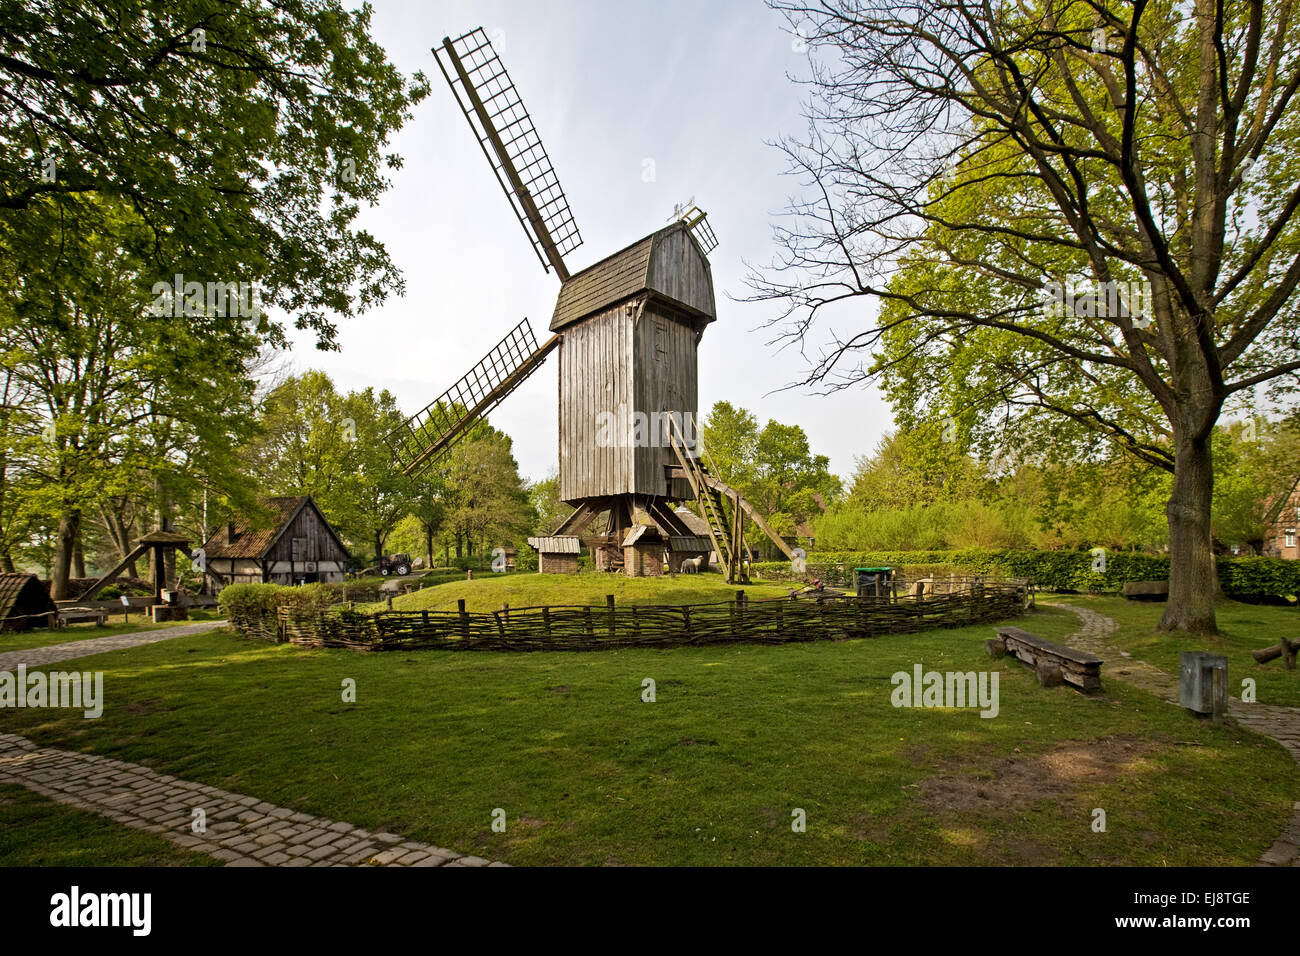 Muehlenhof Open Air Museum, Muenster, Germany - Stock Image